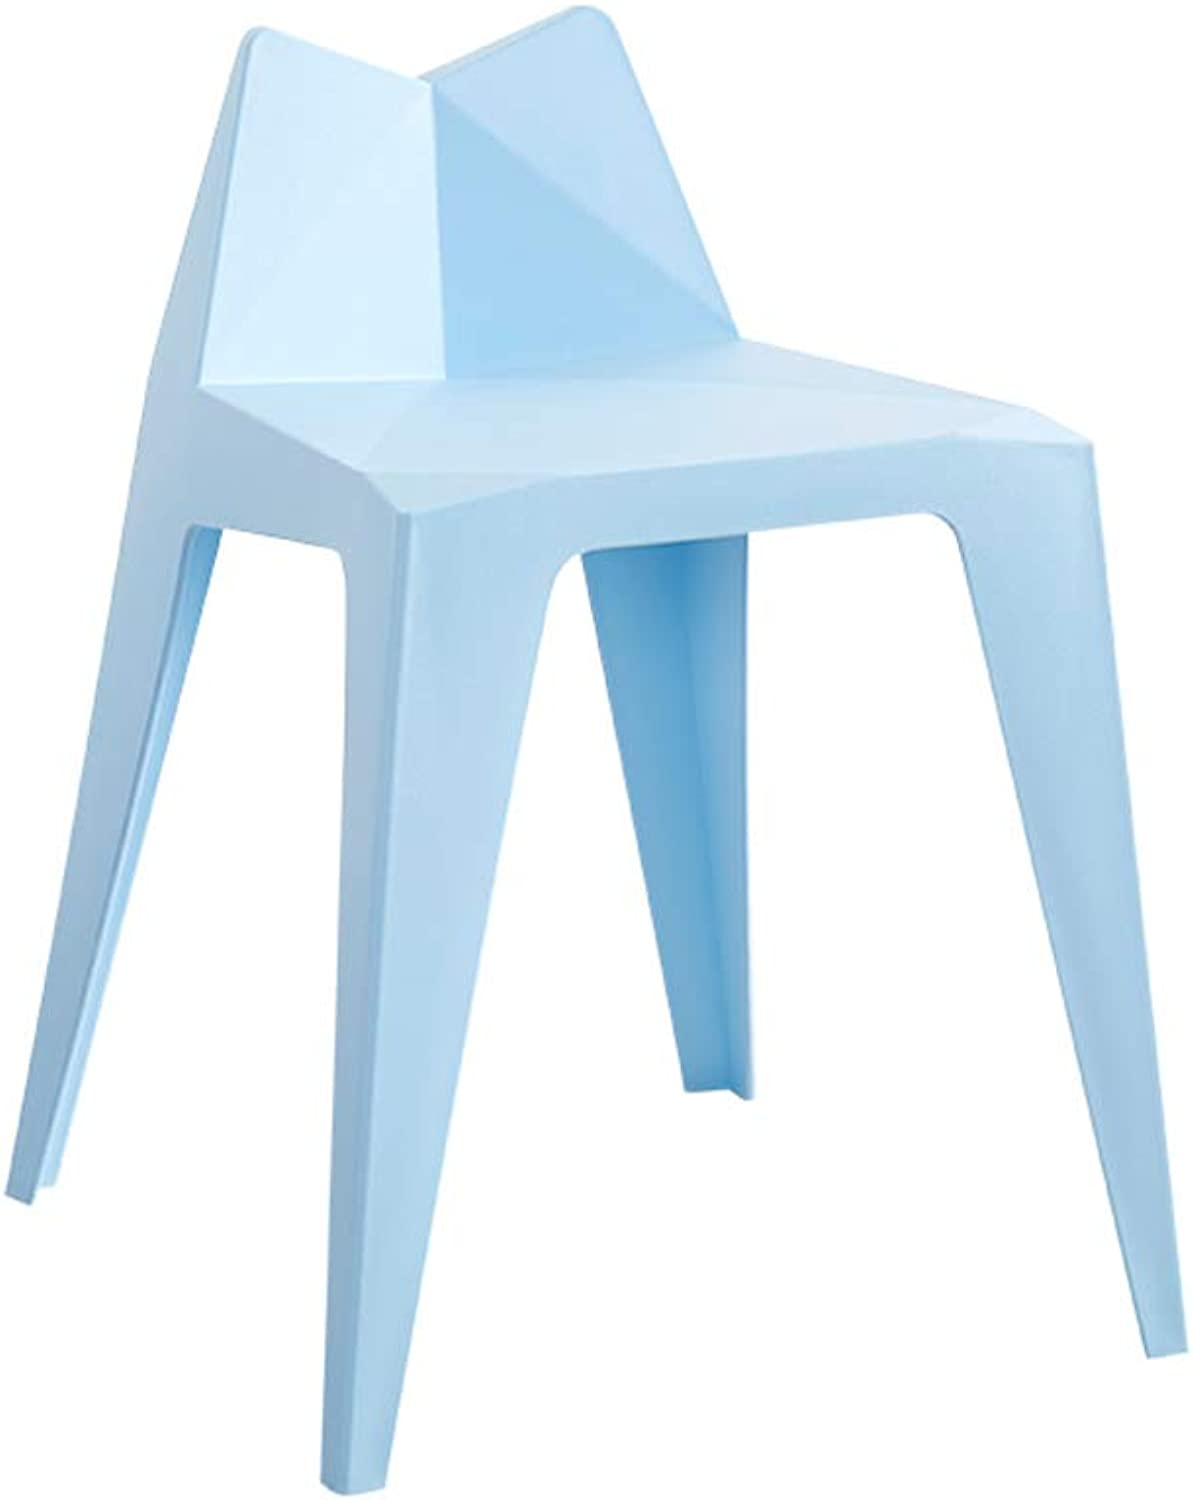 SYFO Household Plastic Stool, Creative Chair, Simple Adult Stool, Fashion shoes Bench Stool (color   bluee)